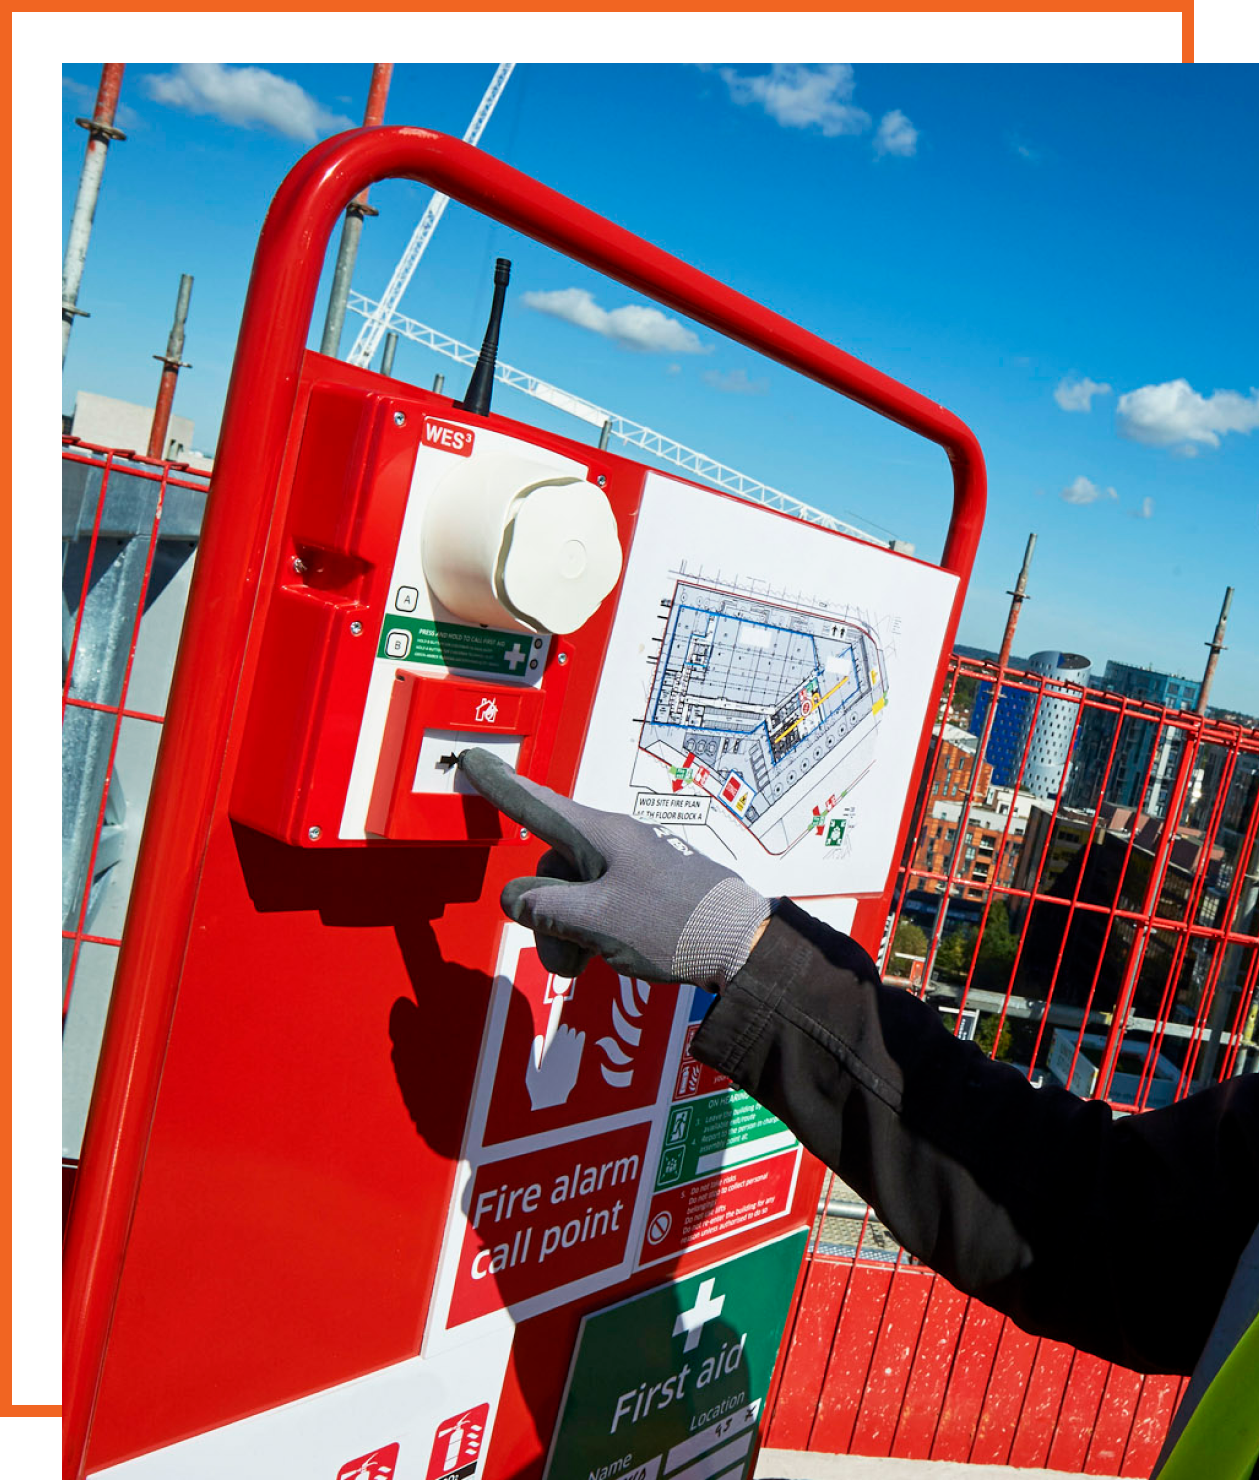 A fire safety engineer testing an on site fire alarm